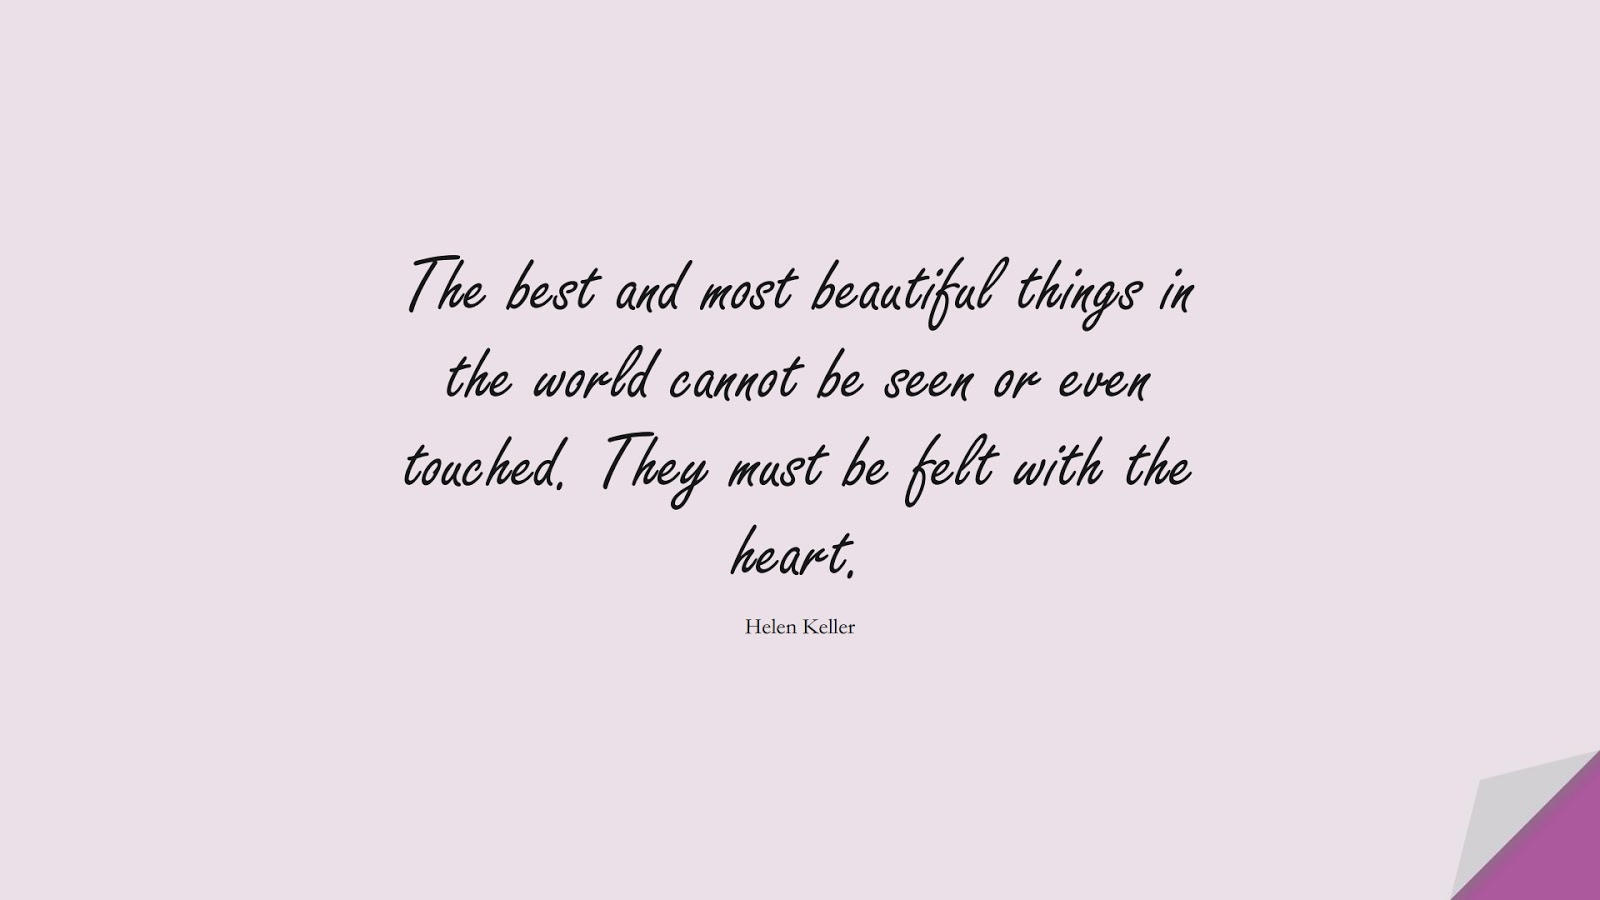 The best and most beautiful things in the world cannot be seen or even touched. They must be felt with the heart. (Helen Keller);  #LoveQuotes